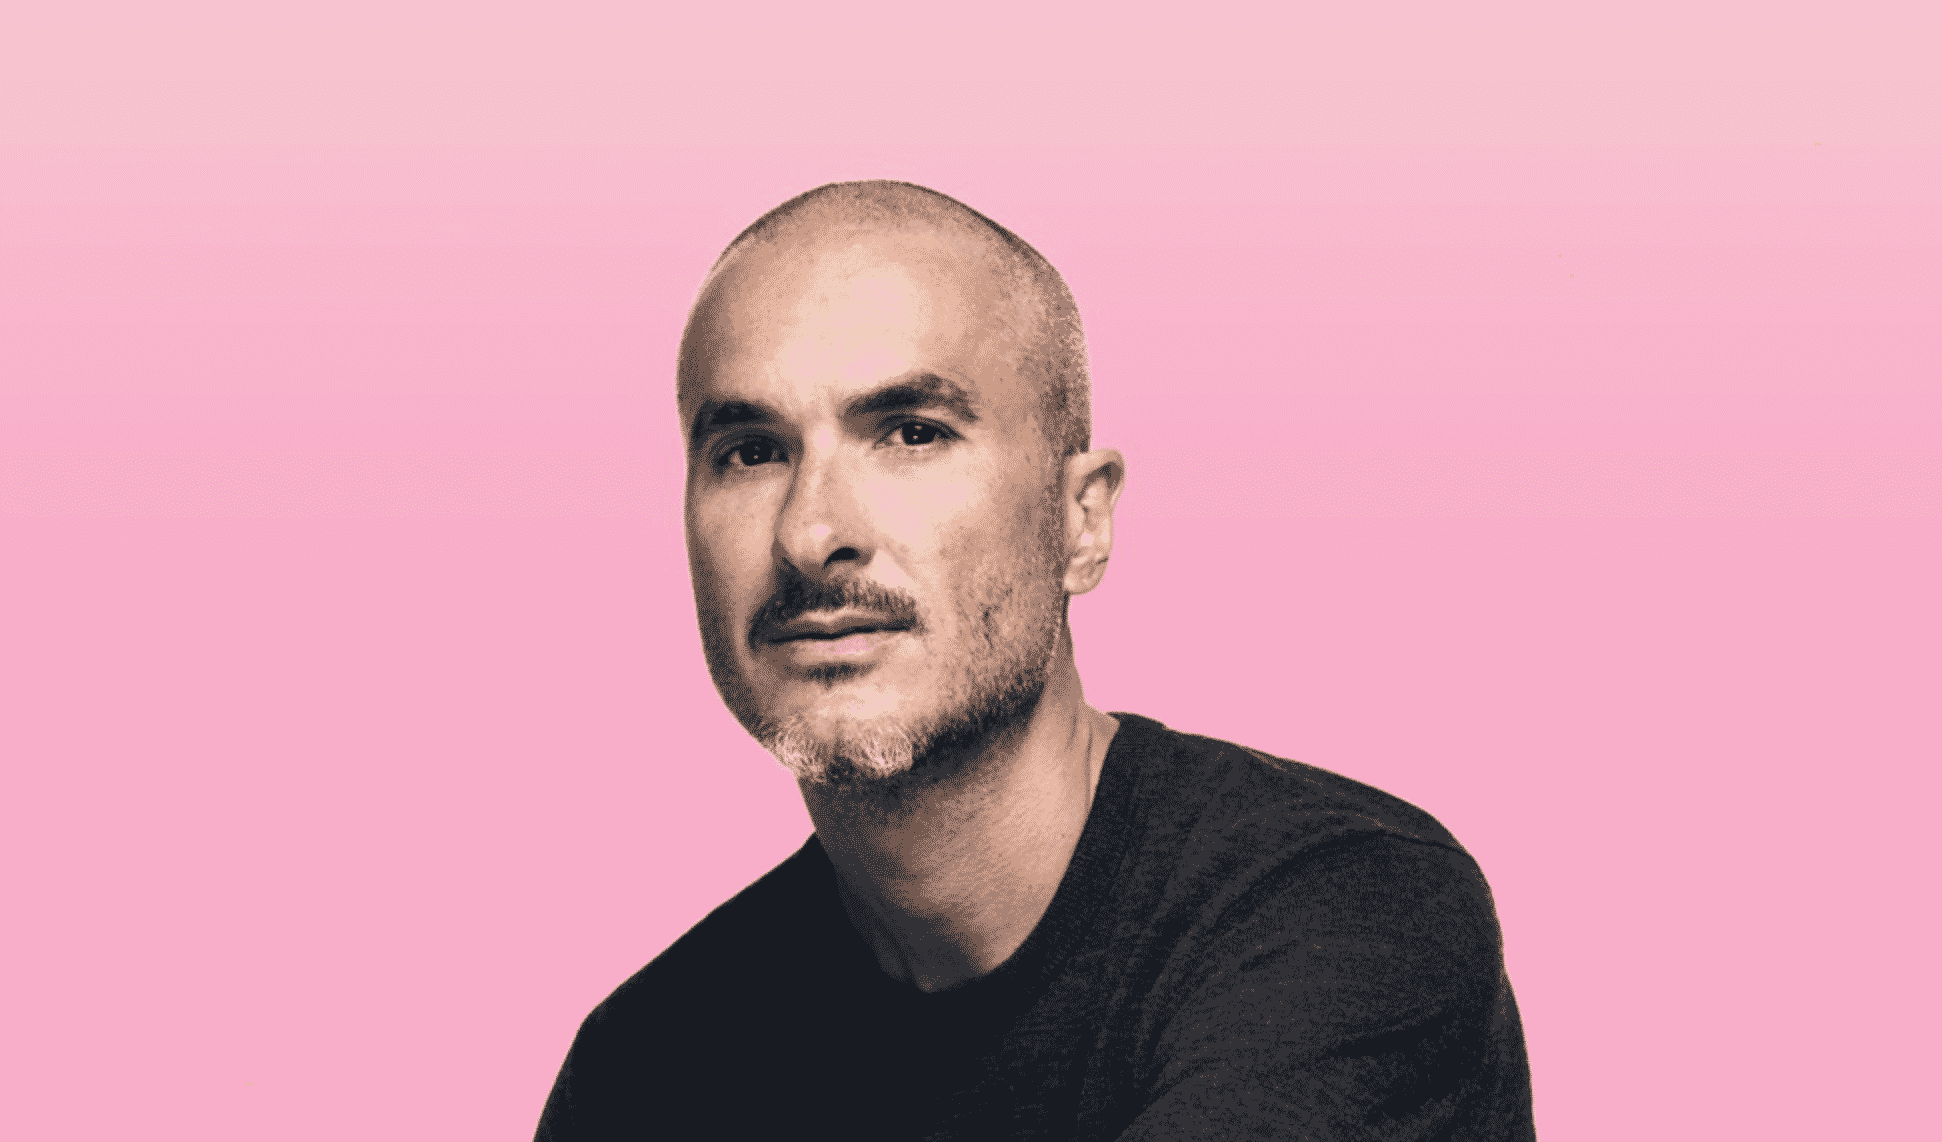 Apple launches a new interview series on Apple Music